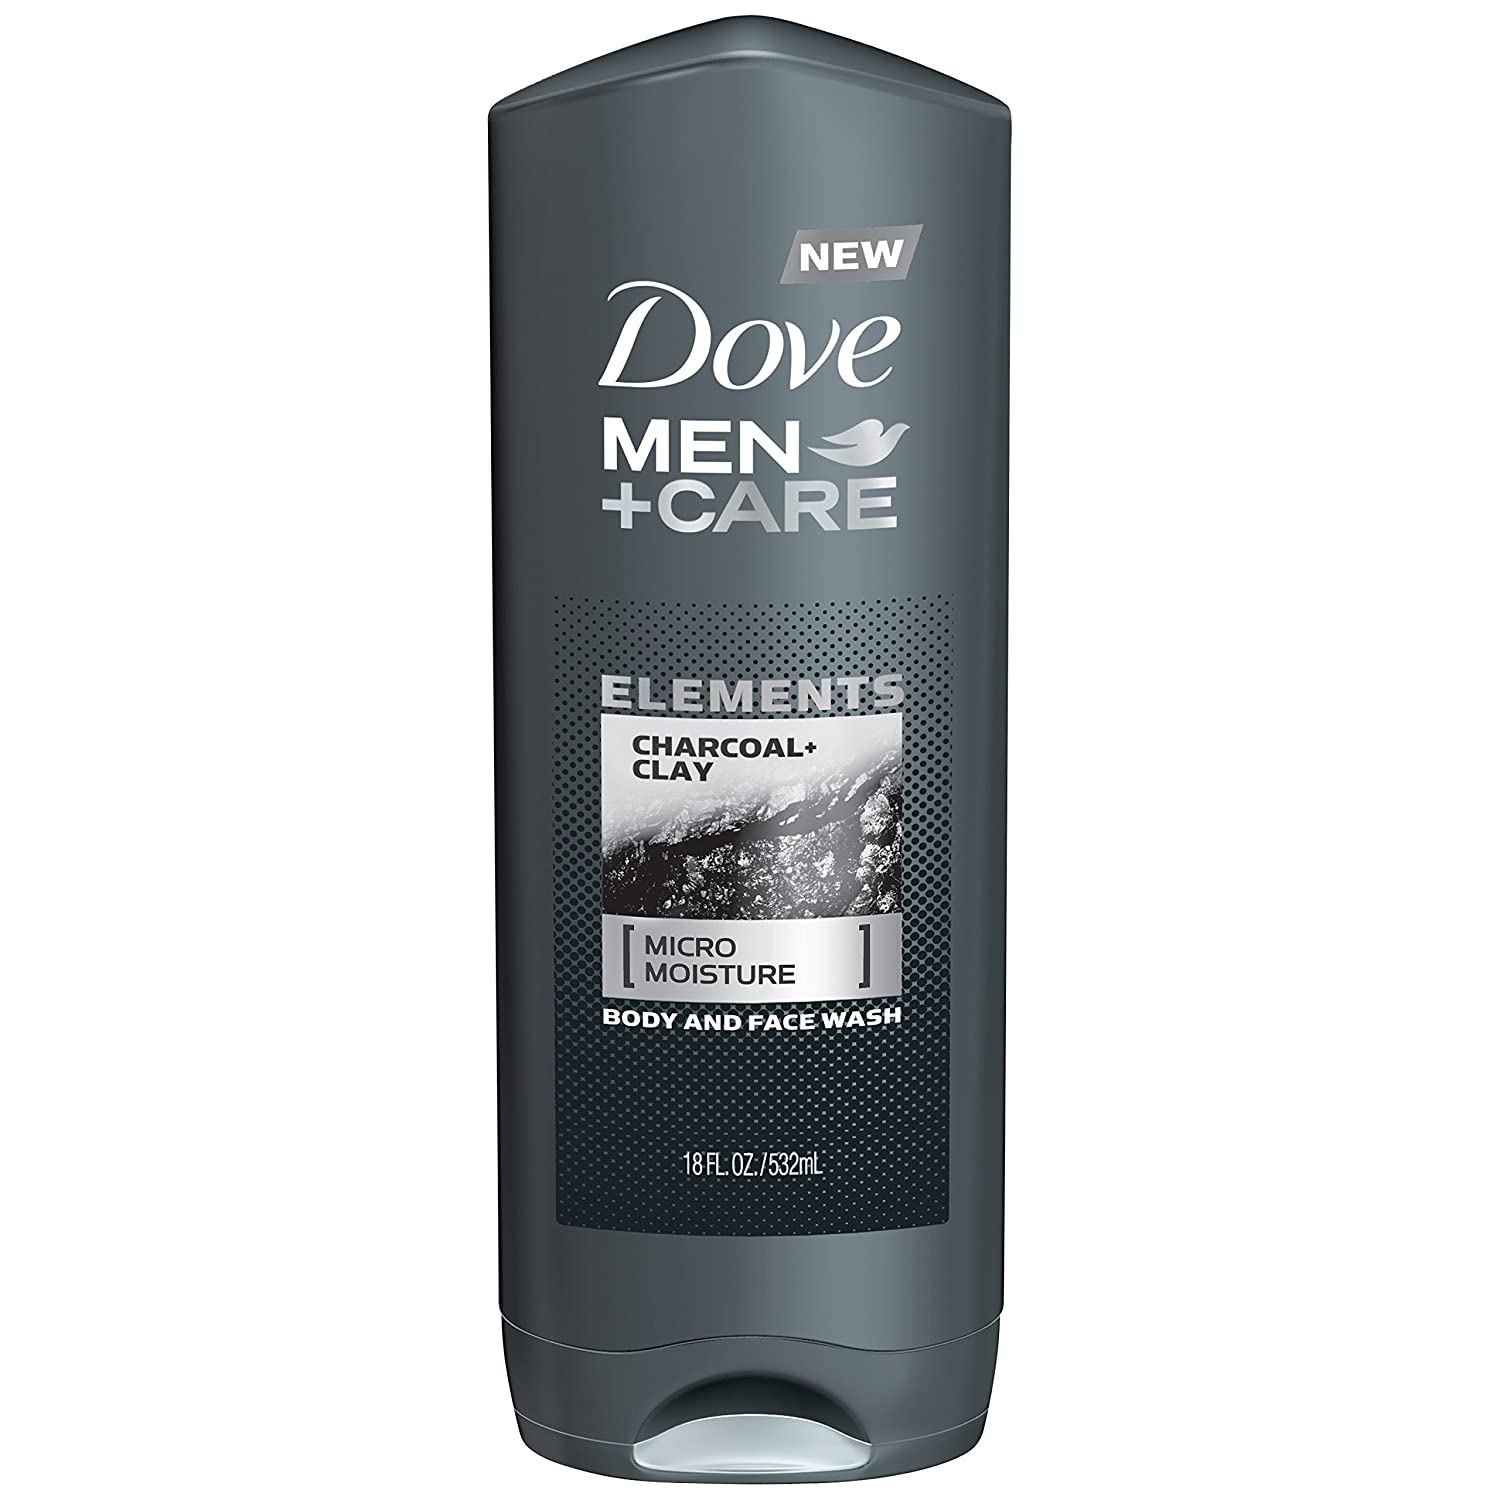 Dove Men+Care Elements Body and Face Wash, Charcoal and Clay 18 oz